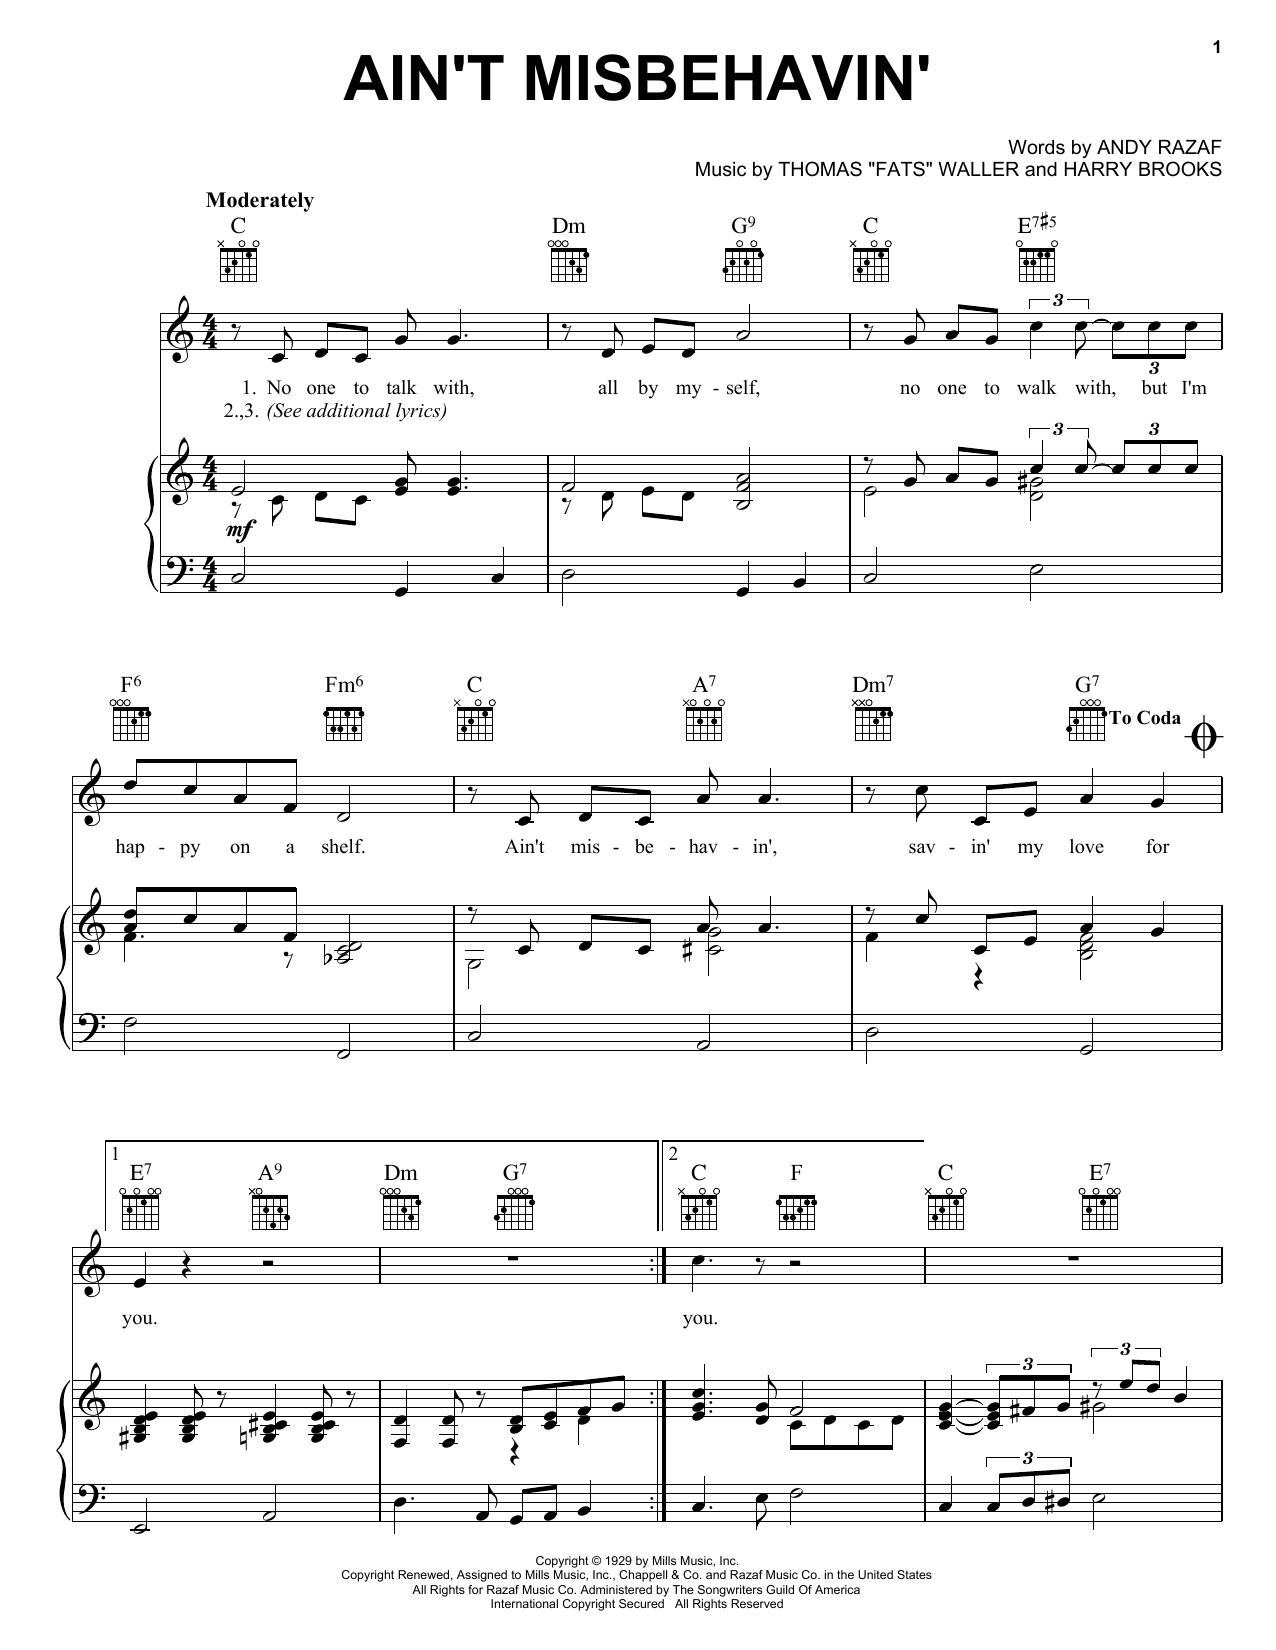 Fats Waller Ain't Misbehavin' sheet music notes and chords